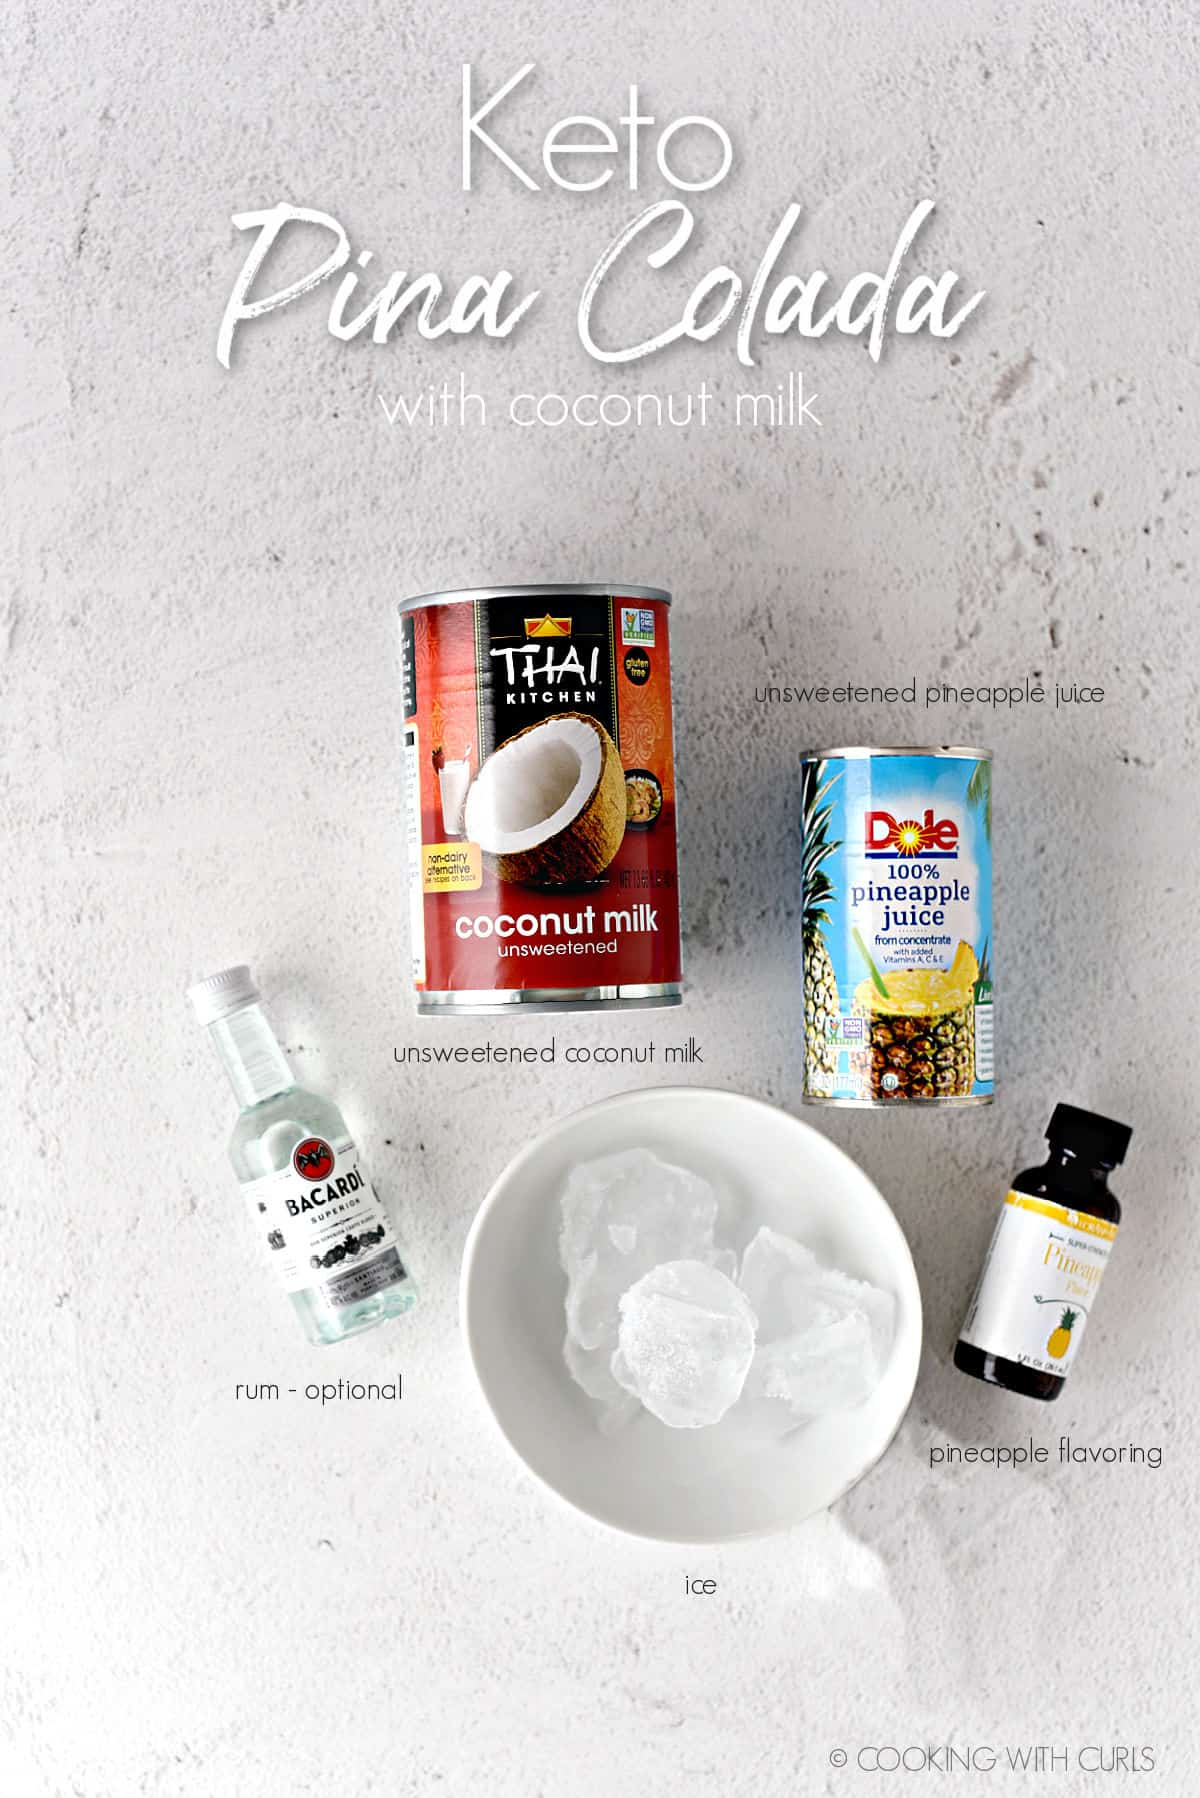 Keto Pina Colada ingredients; canned coconut milk, canned pineapple juice, tiny bottle of Bacardi rum, a white bowl with ice cubes and a bottle of pineapple flavoring.